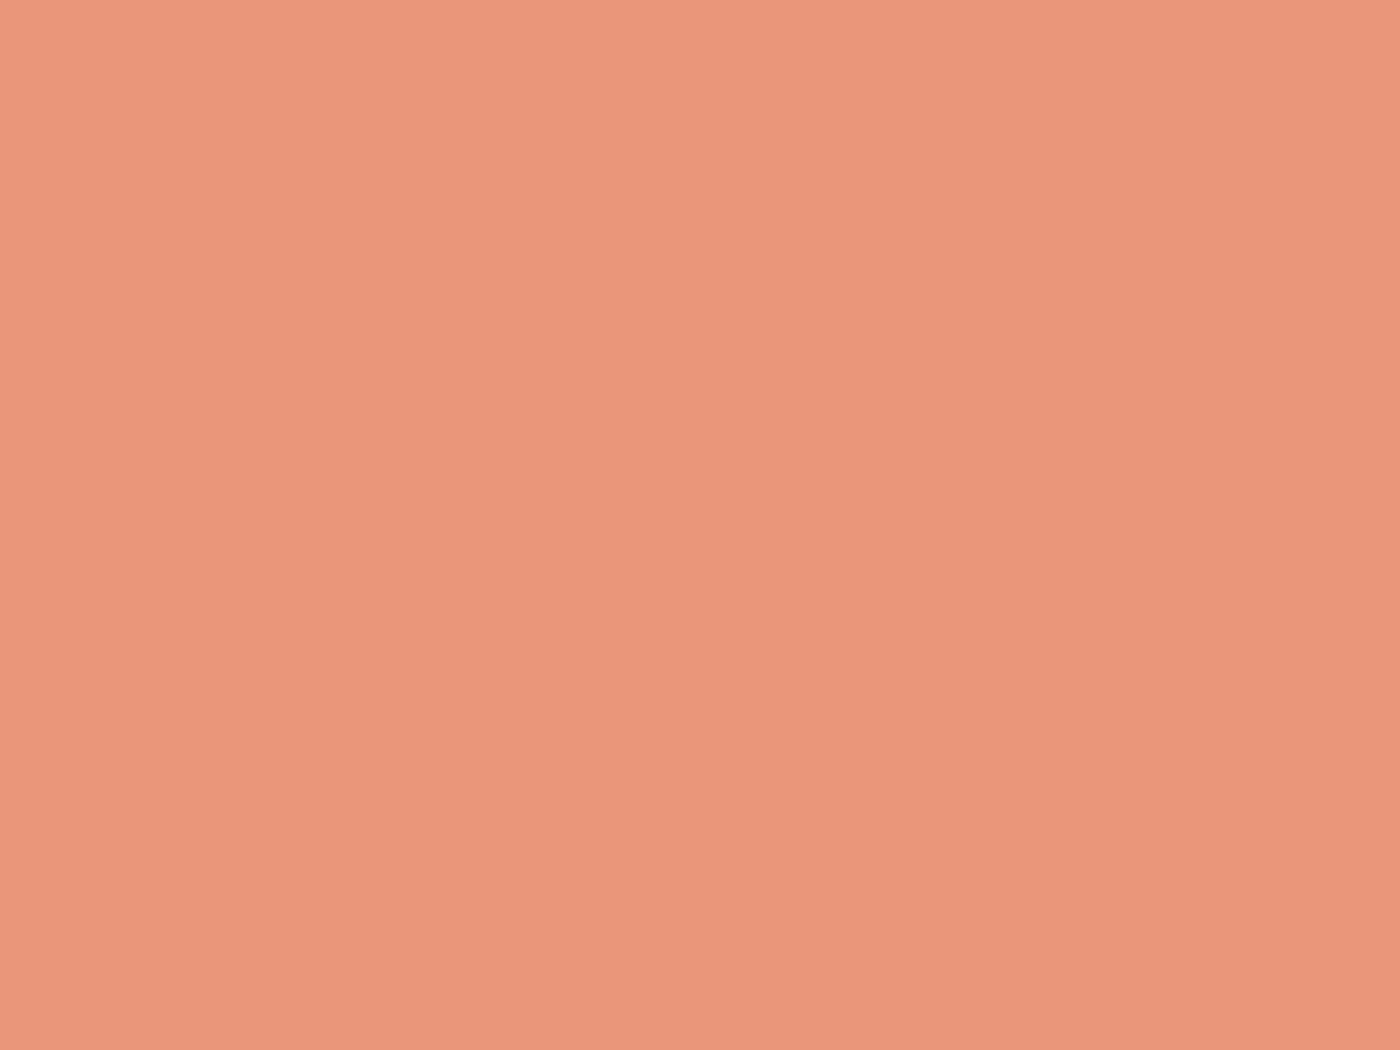 1400x1050 Dark Salmon Solid Color Background